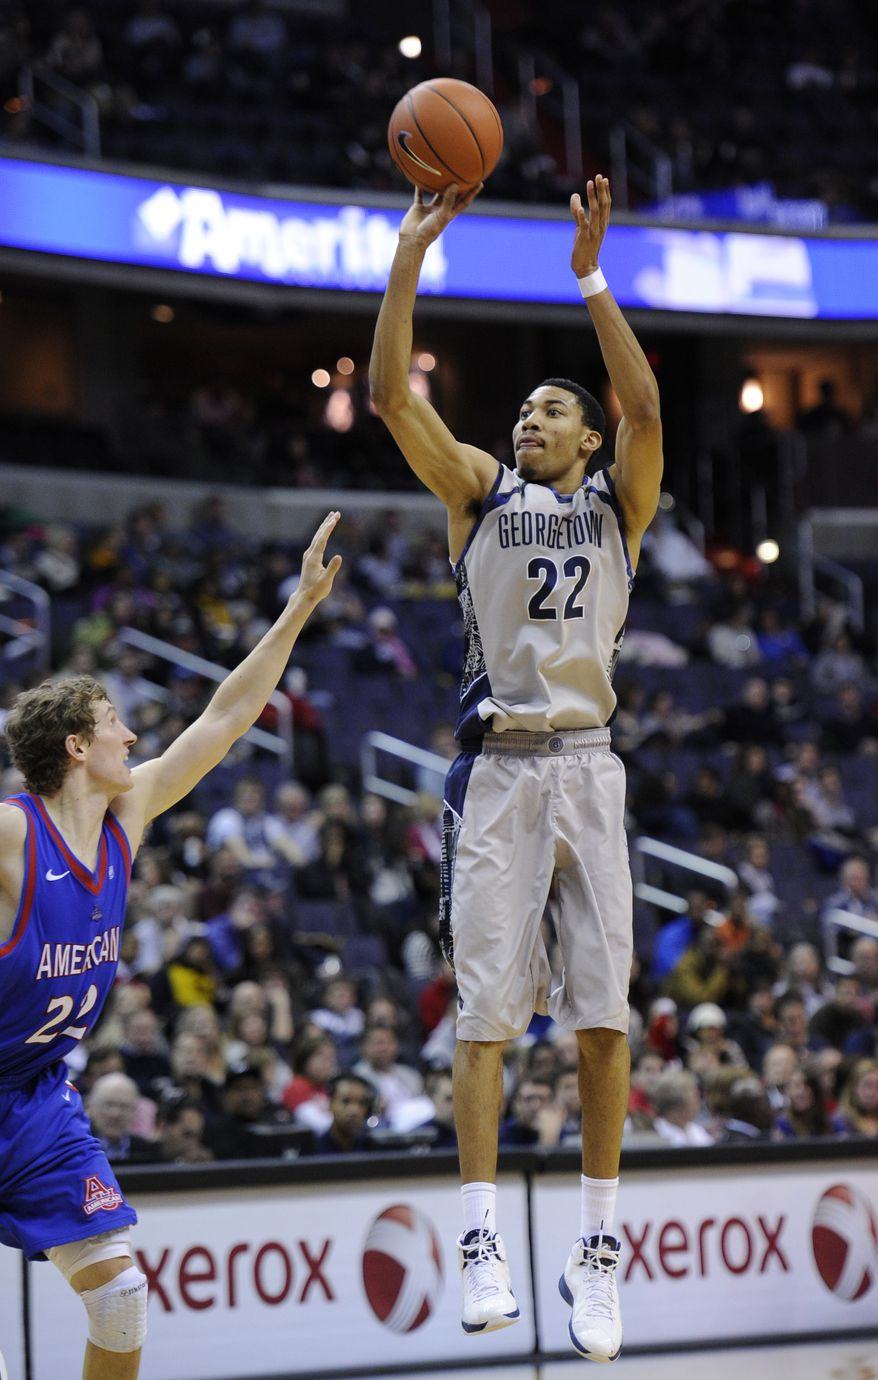 Georgetown forward Otto Porter, right, takes a shot against American guard John Schoof, left, during the second half of an NCAA college basketball game, Saturday, Dec. 22, 2012, in Washington. Georgetown won 65-48. (AP Photo/Nick Wass)